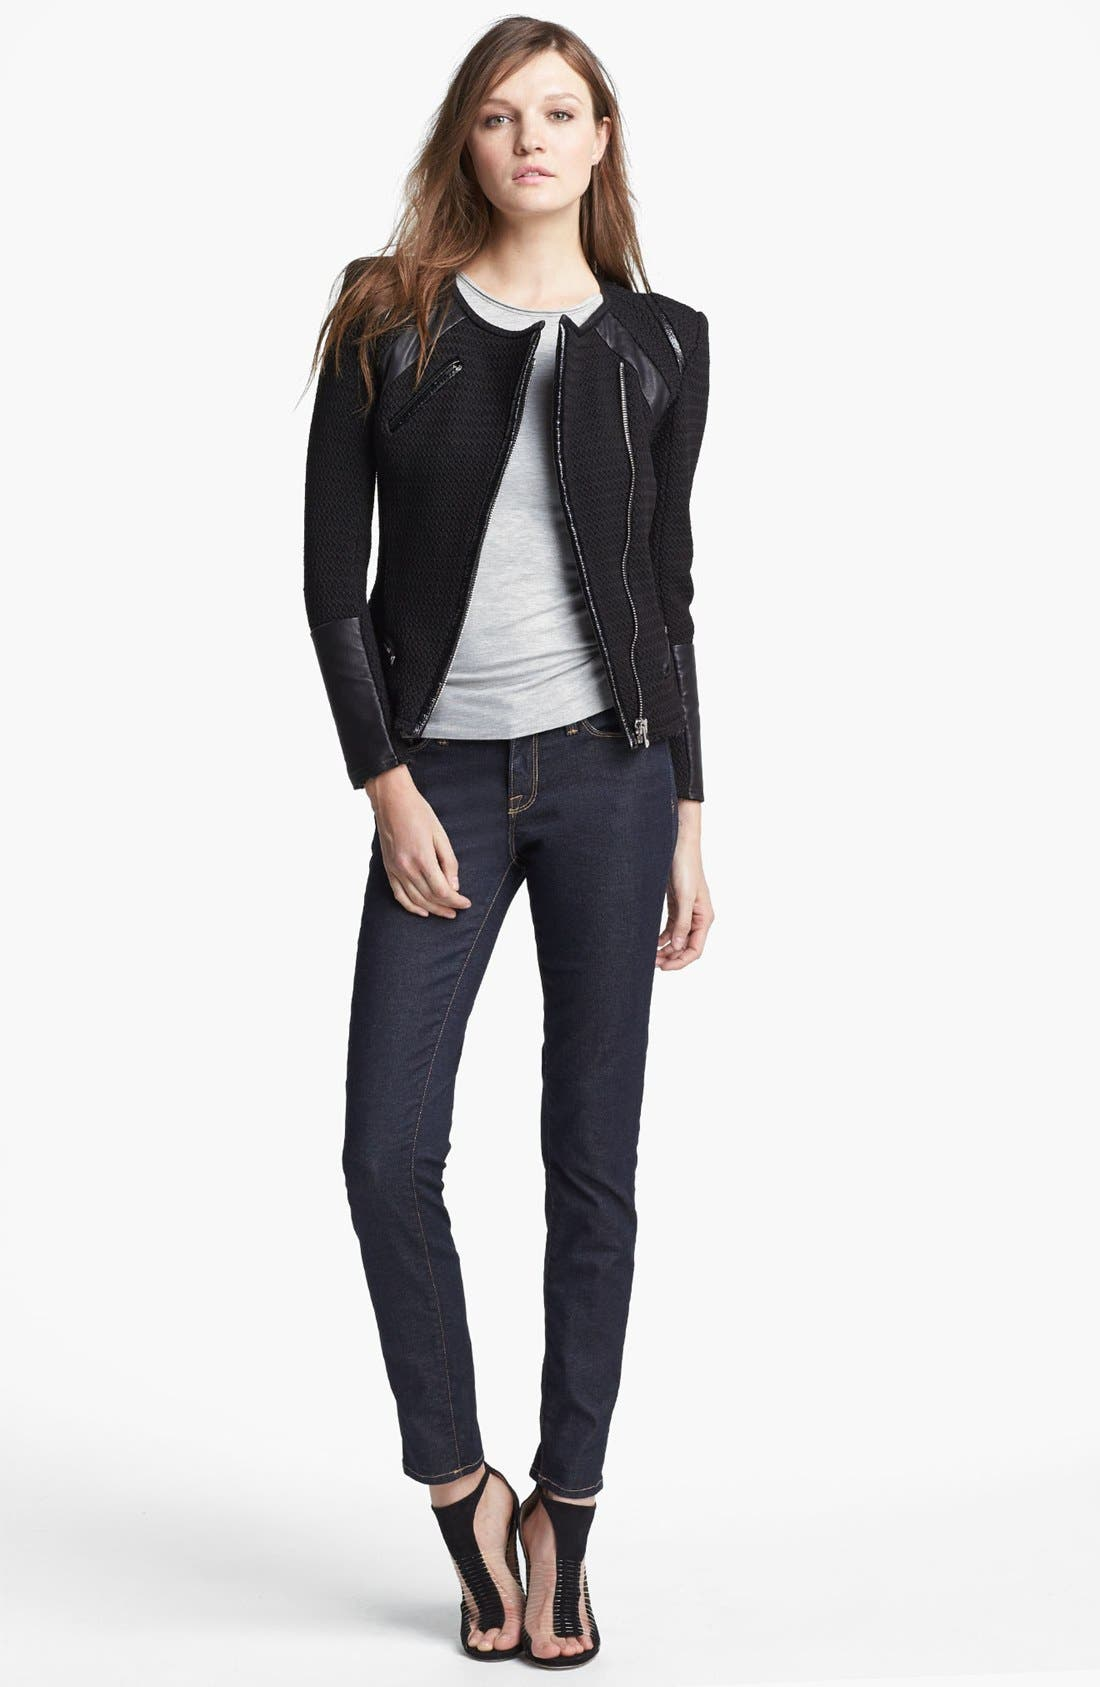 Alternate Image 1 Selected - IRO 'Risley' Asymmetrical Leather Trim Jacket